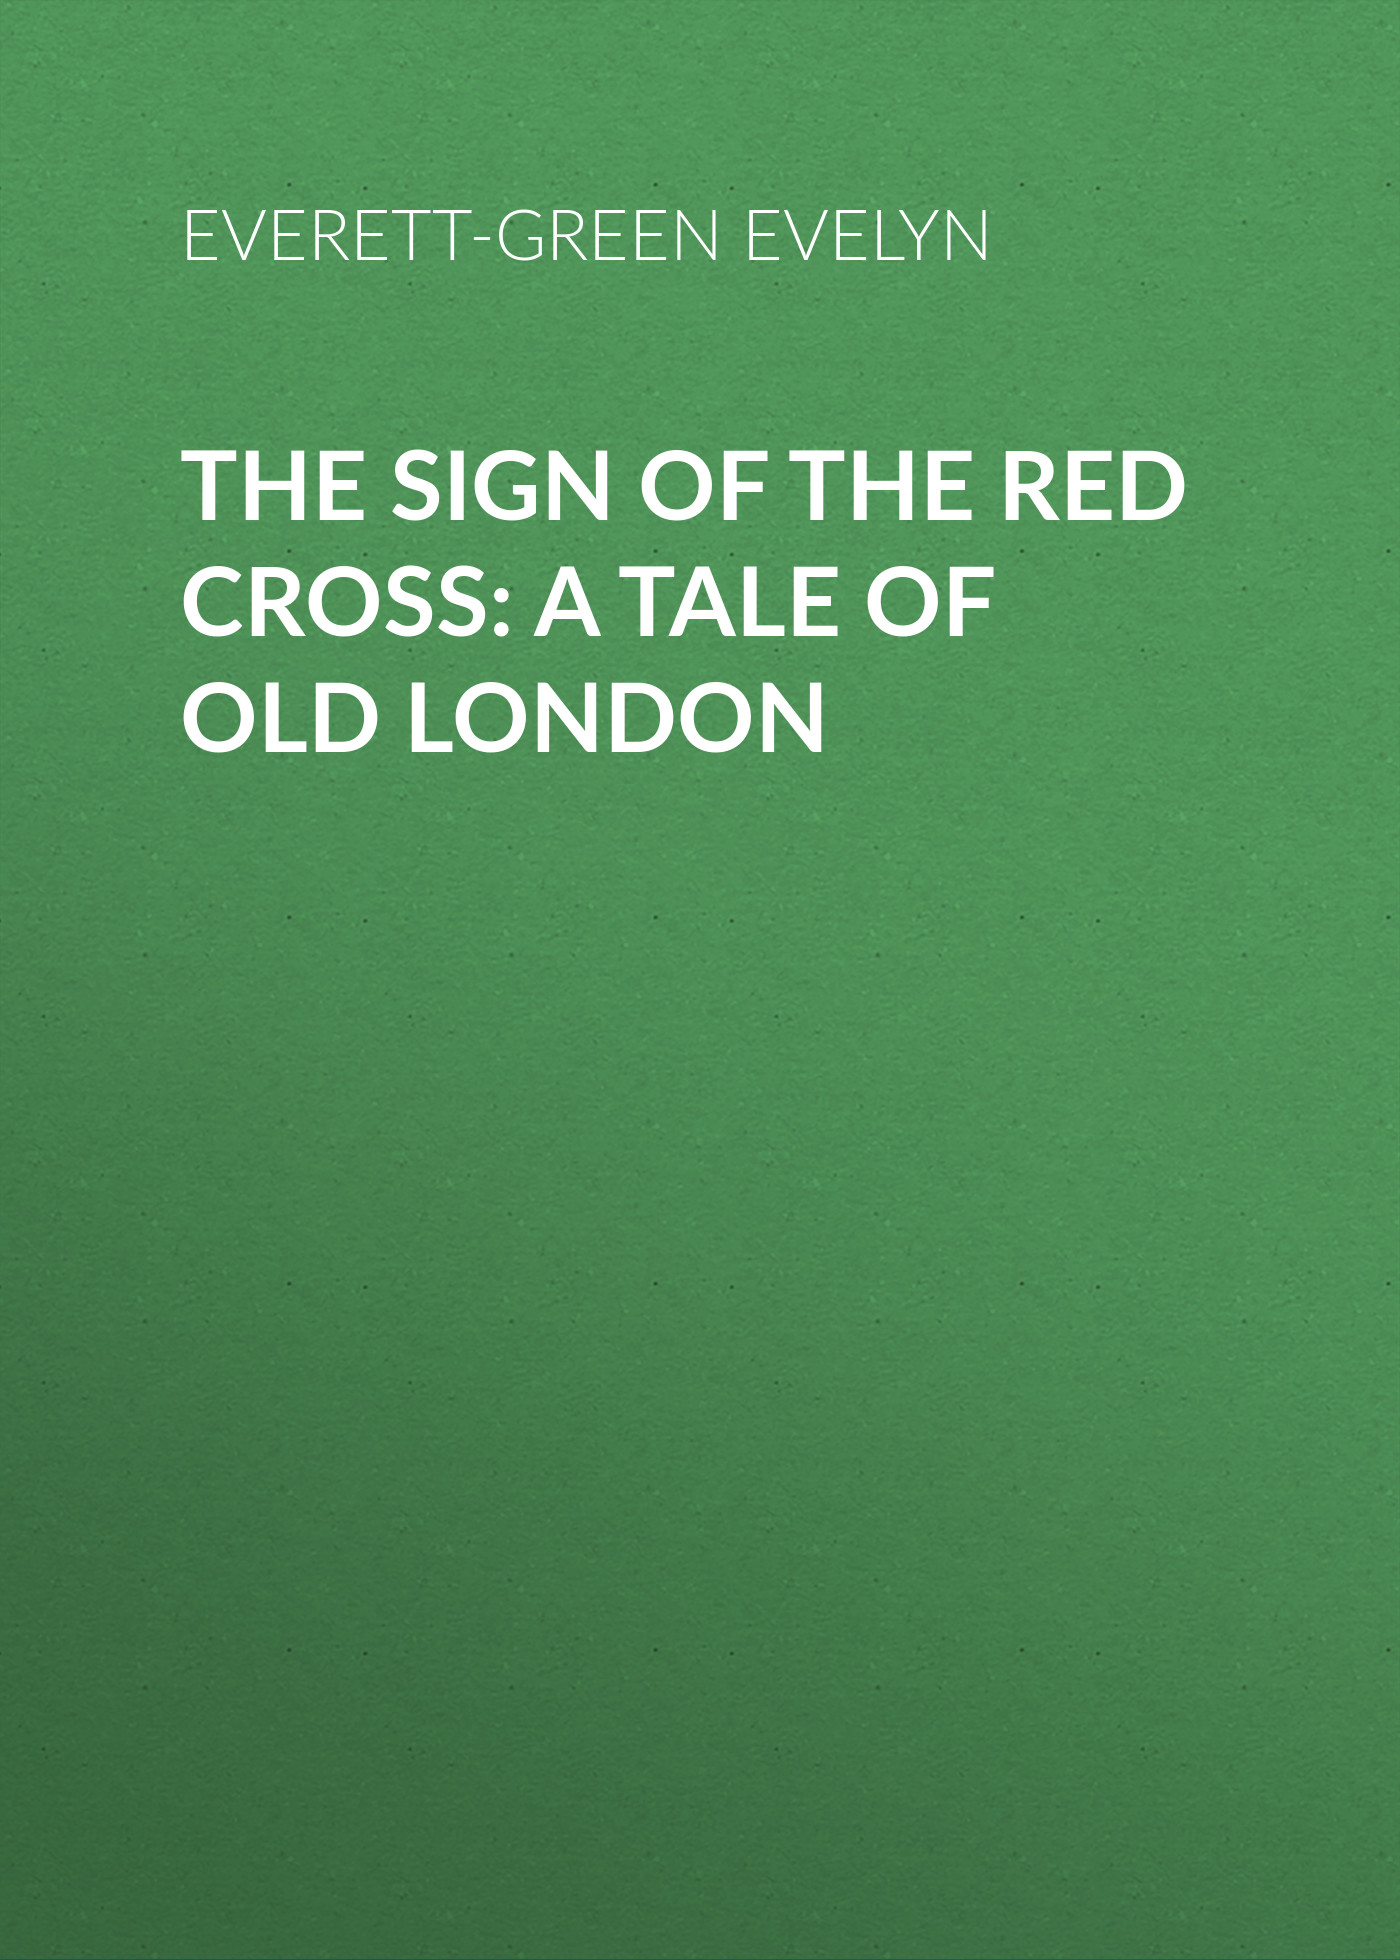 Everett-Green Evelyn The Sign of the Red Cross: A Tale of Old London sulphated galactans of red seaweeds